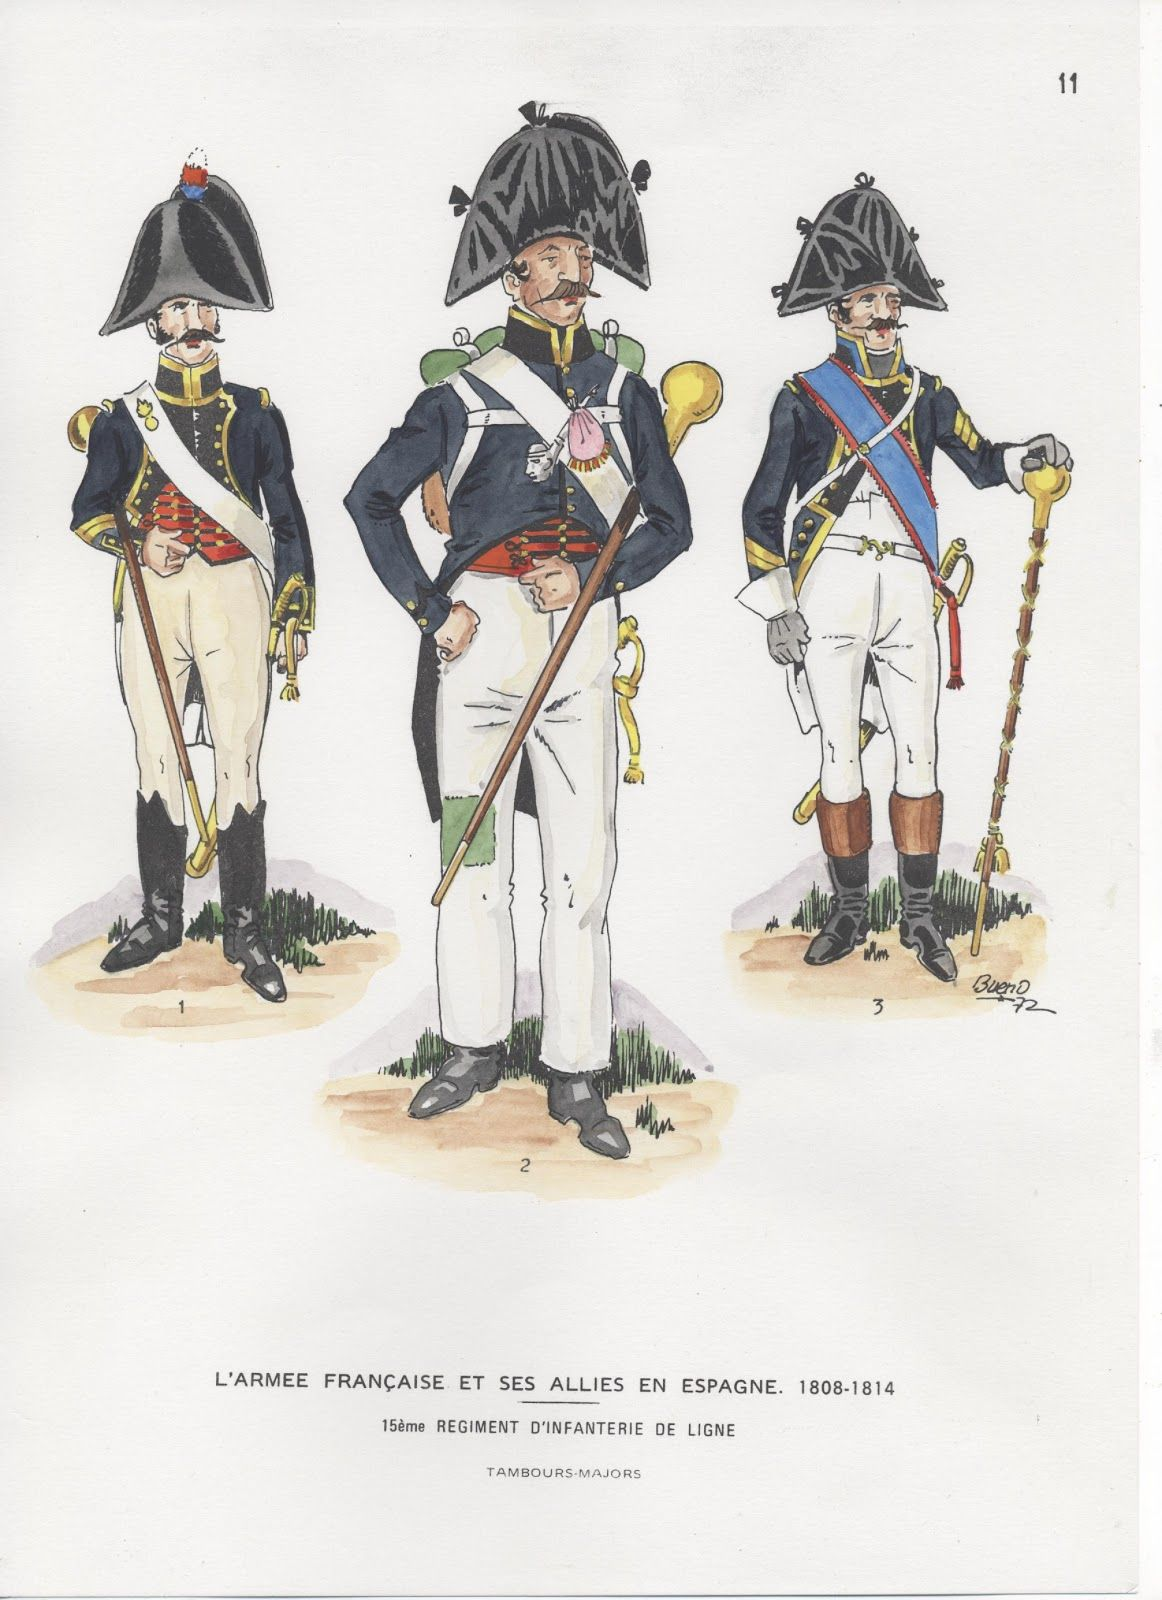 French;Infantry 15th Line, Drum Majors in Spain 1808-14.